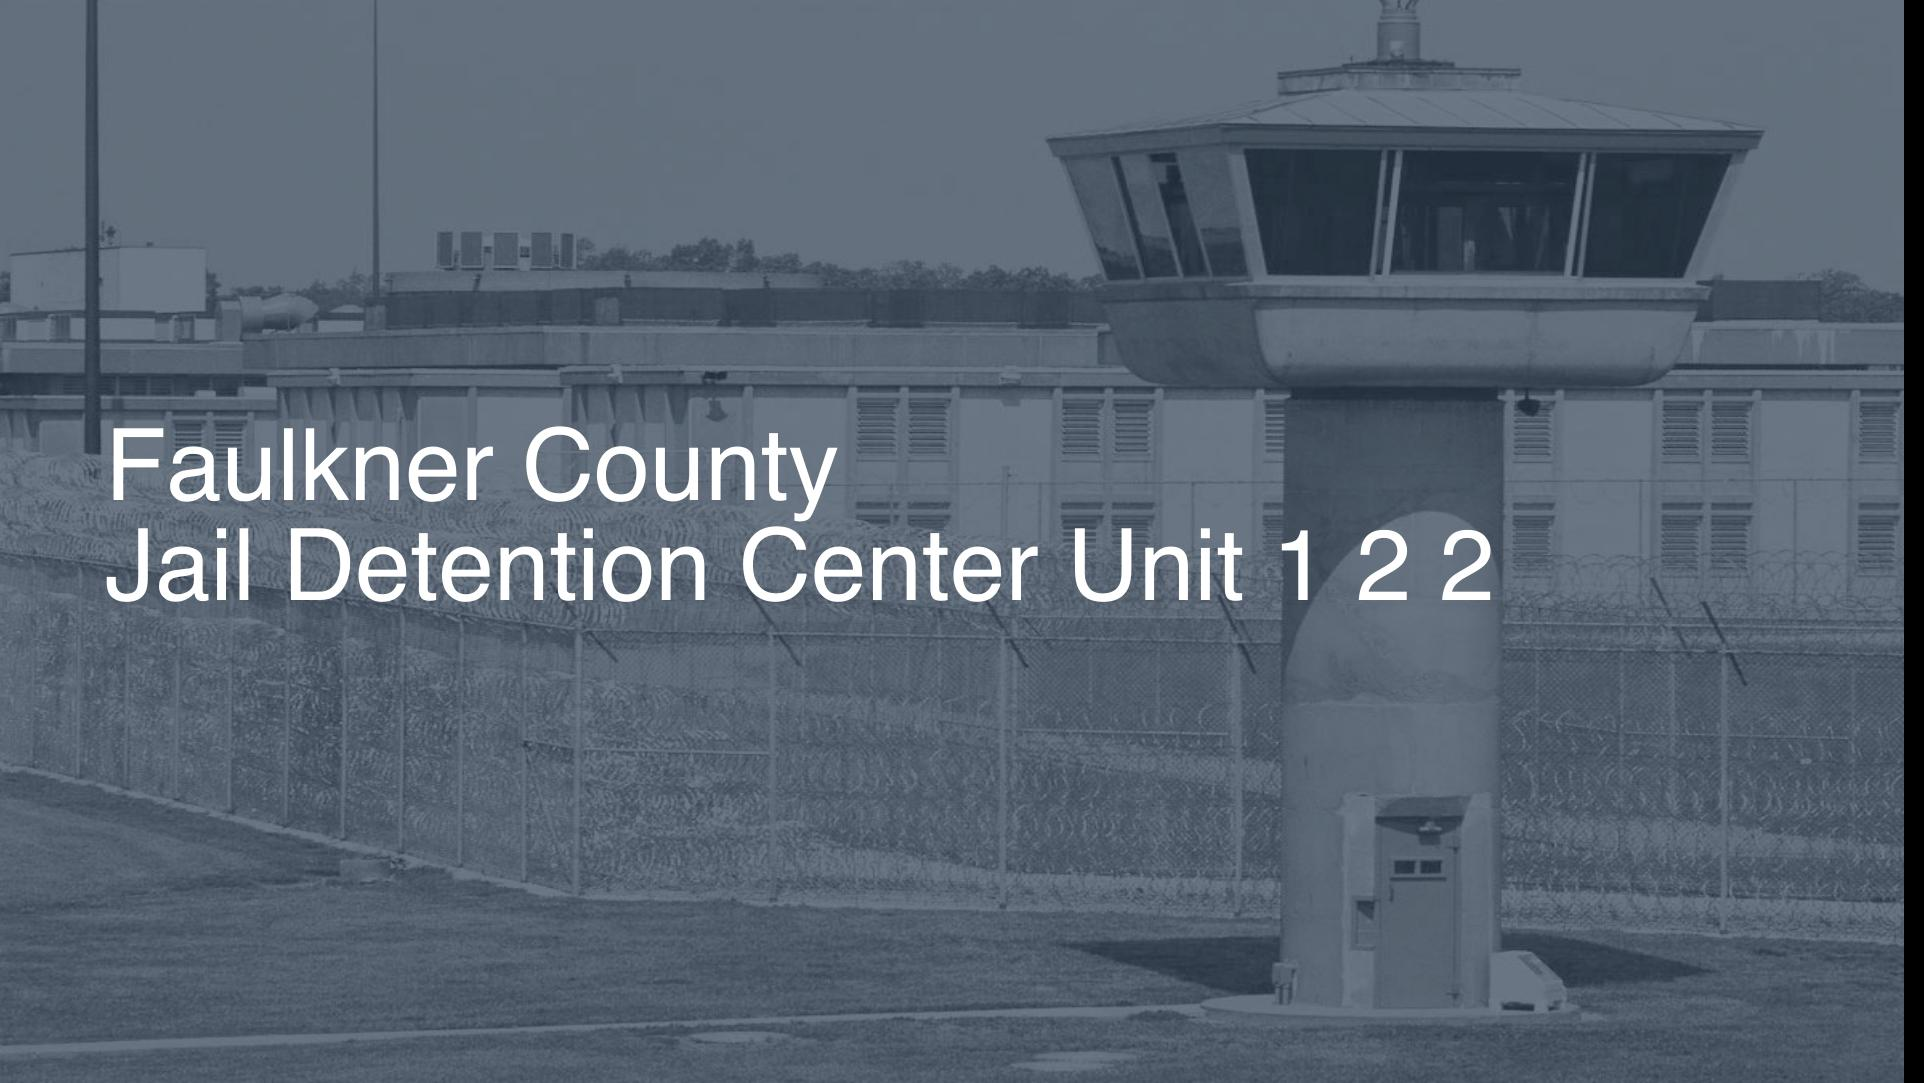 Faulkner County Jail & Detention Center (Unit 1 & 2) correctional facility picture